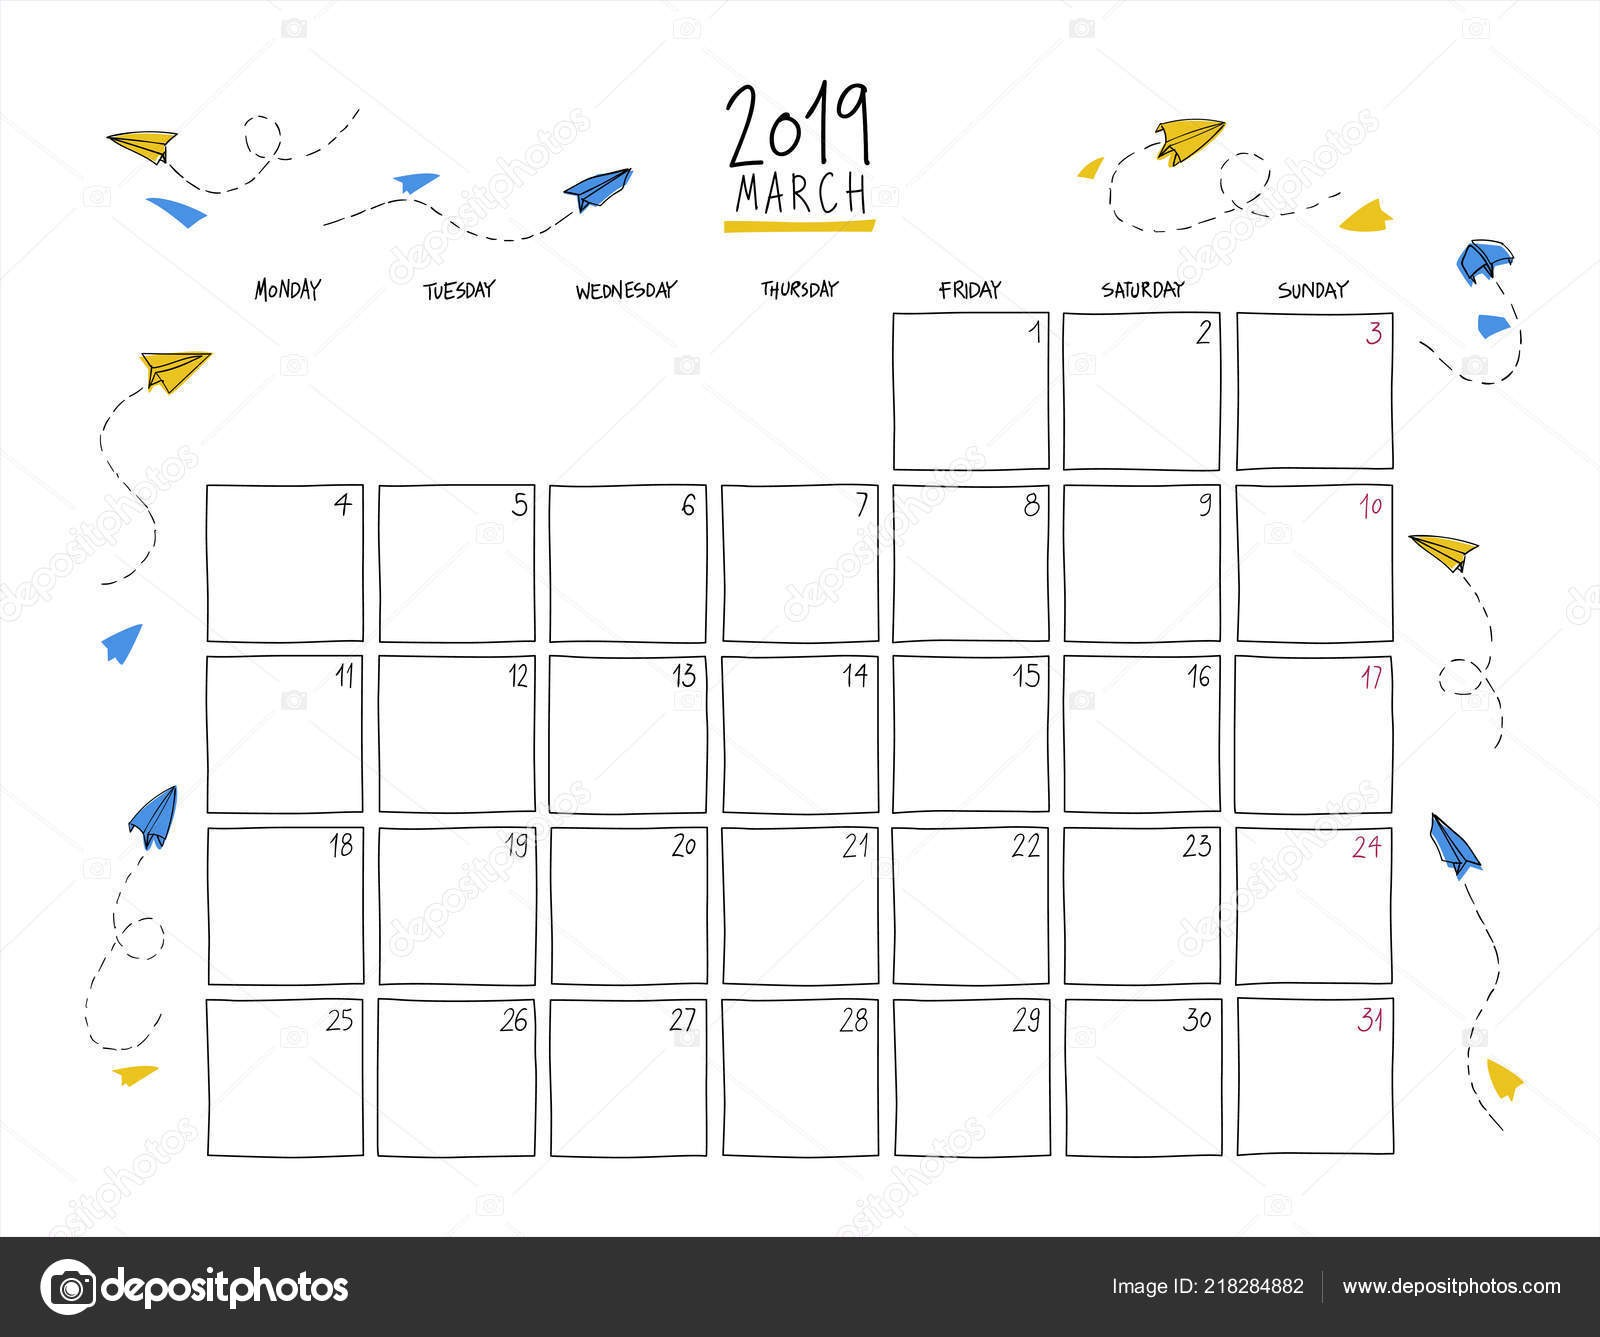 March Calendar 2019 Más Recientes March 2019 Wall Calendar Colorful Sketch Horizontal Template Letter Of March Calendar 2019 Más Actual Odia Calendar 2019 with March Odishain